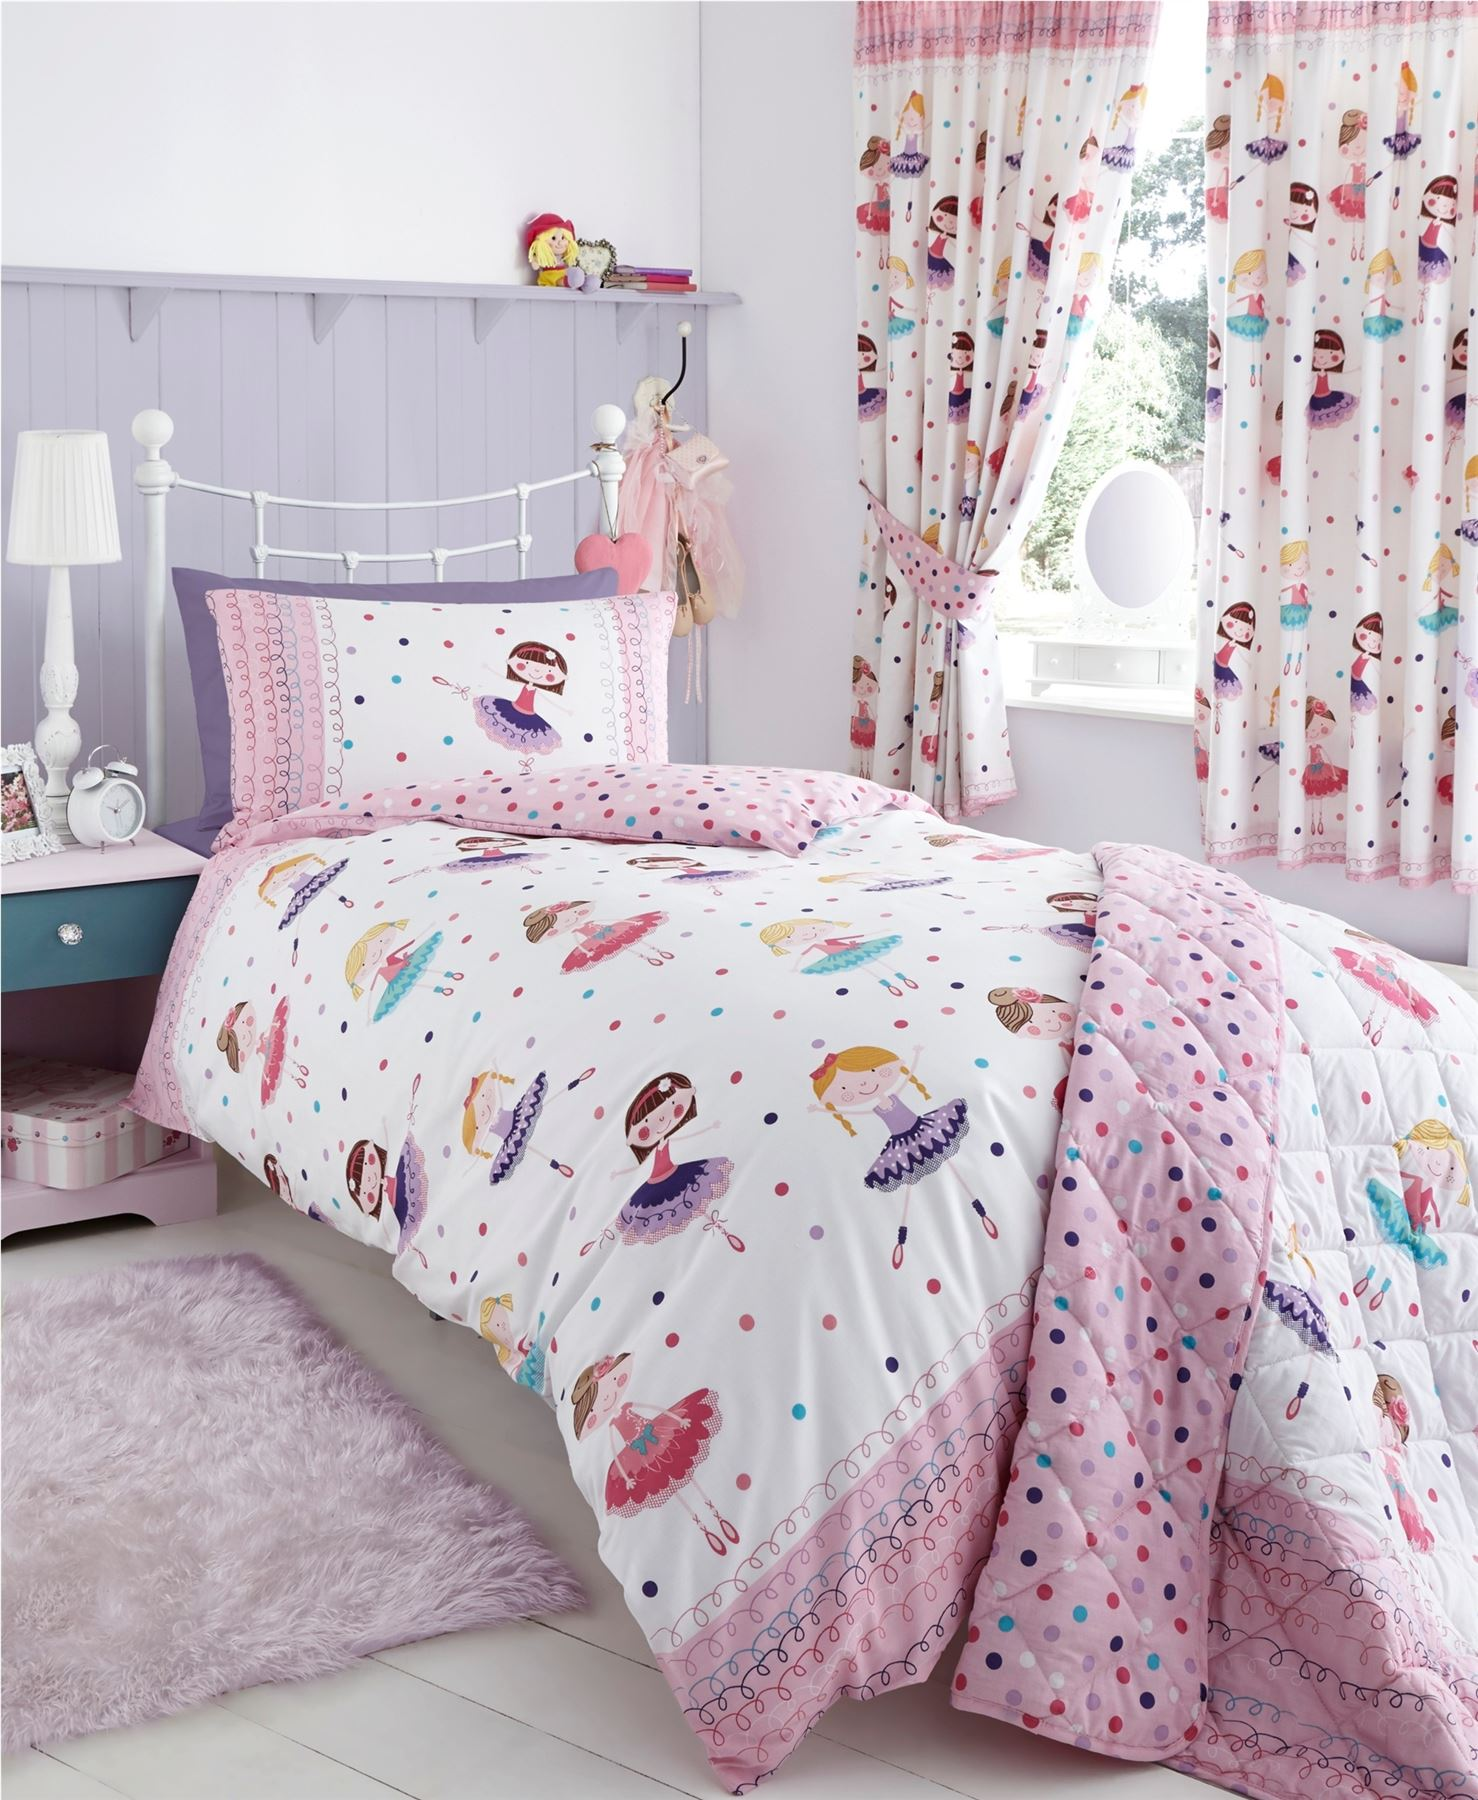 ... Quilt Duvet Cover & Pillowcase Bedding Sets Or Matching Curtains